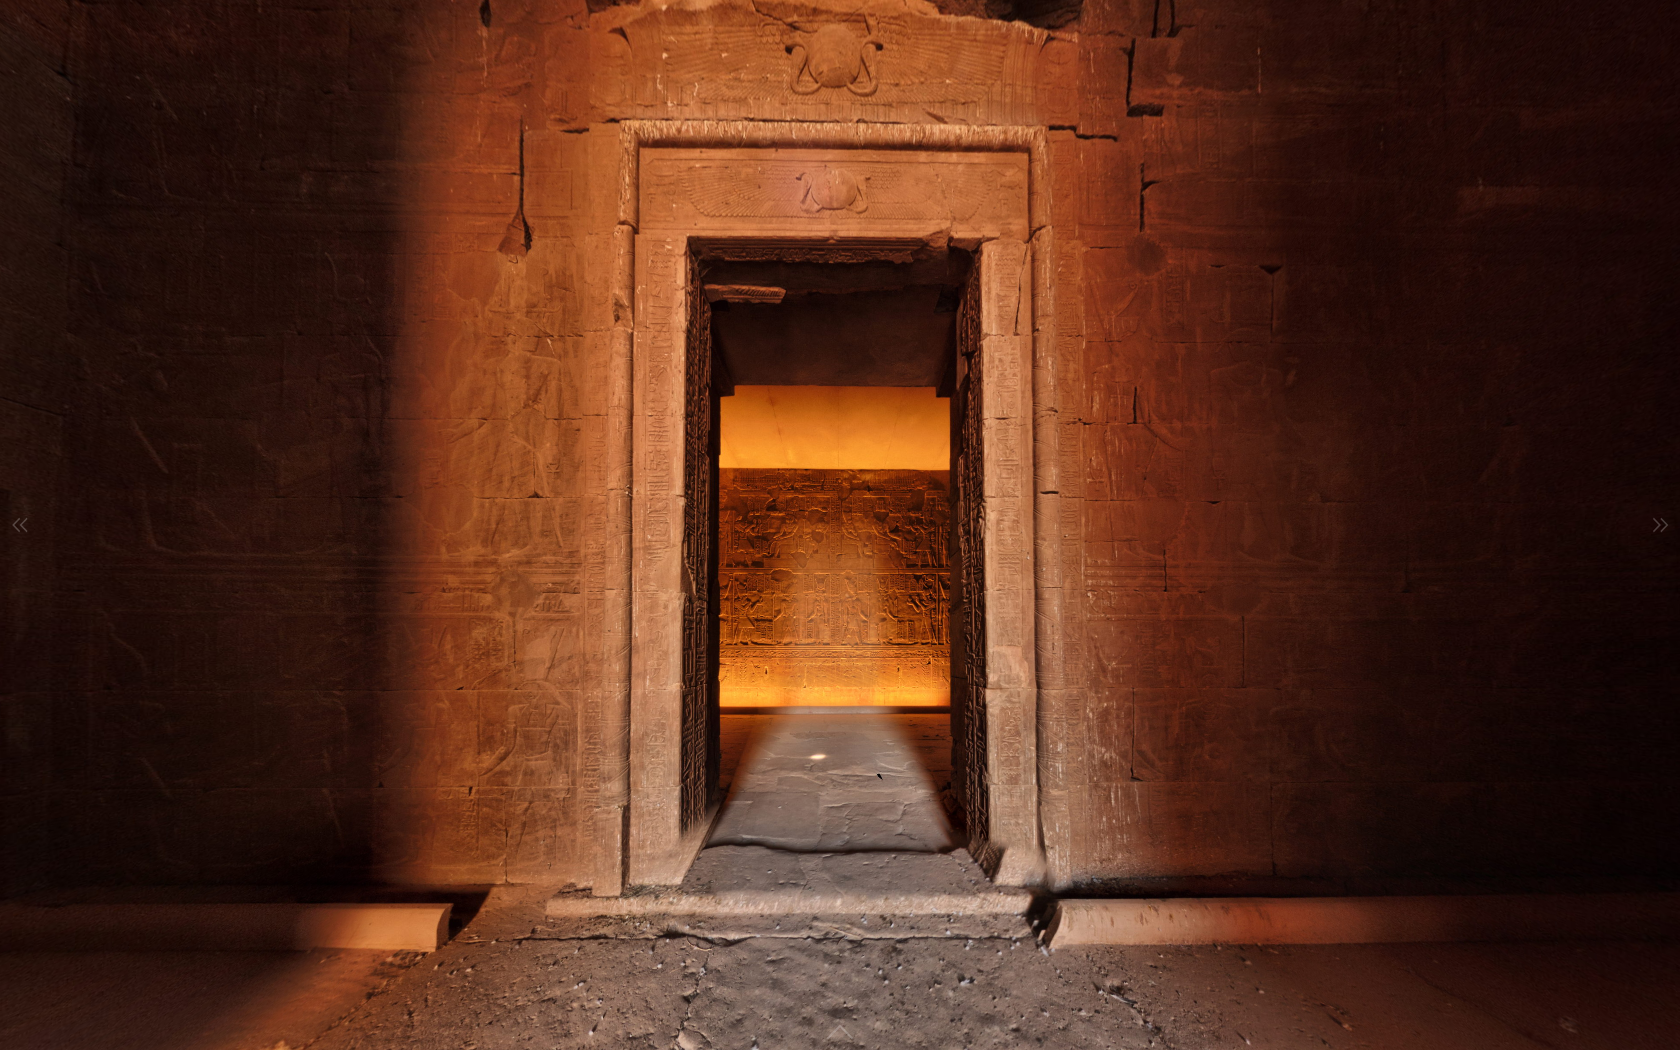 describing egypt View describingegyptcom,360° virtual reality tours in all of egypt historical locations we take you to places so remote and make you feel as if you are there.